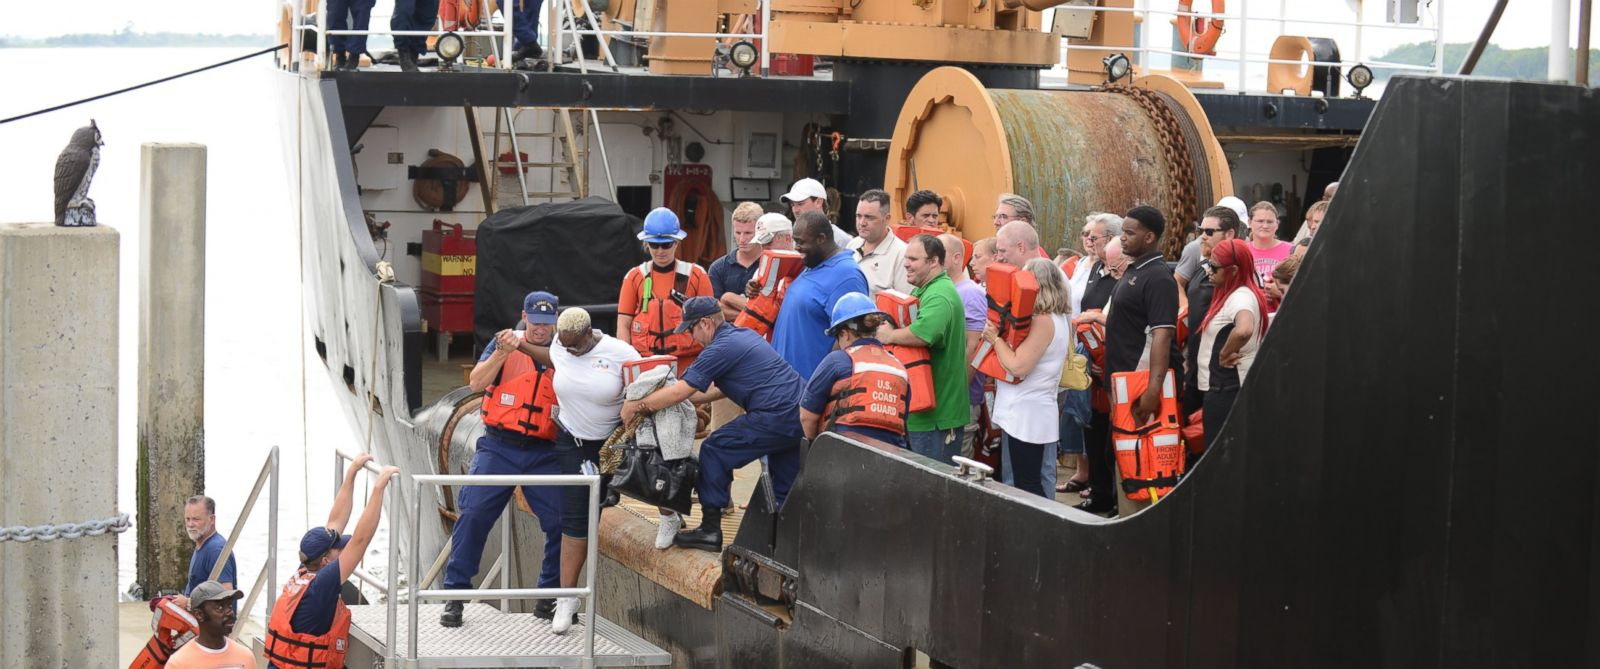 PHOTO: People rescued off a grounded casino boat by the Coast Guard step off the Coast Guard Cutter Maria Bray and onto the pier at Coast Guard Station Tybee Island, Ga., Wednesday, July 16, 2014.